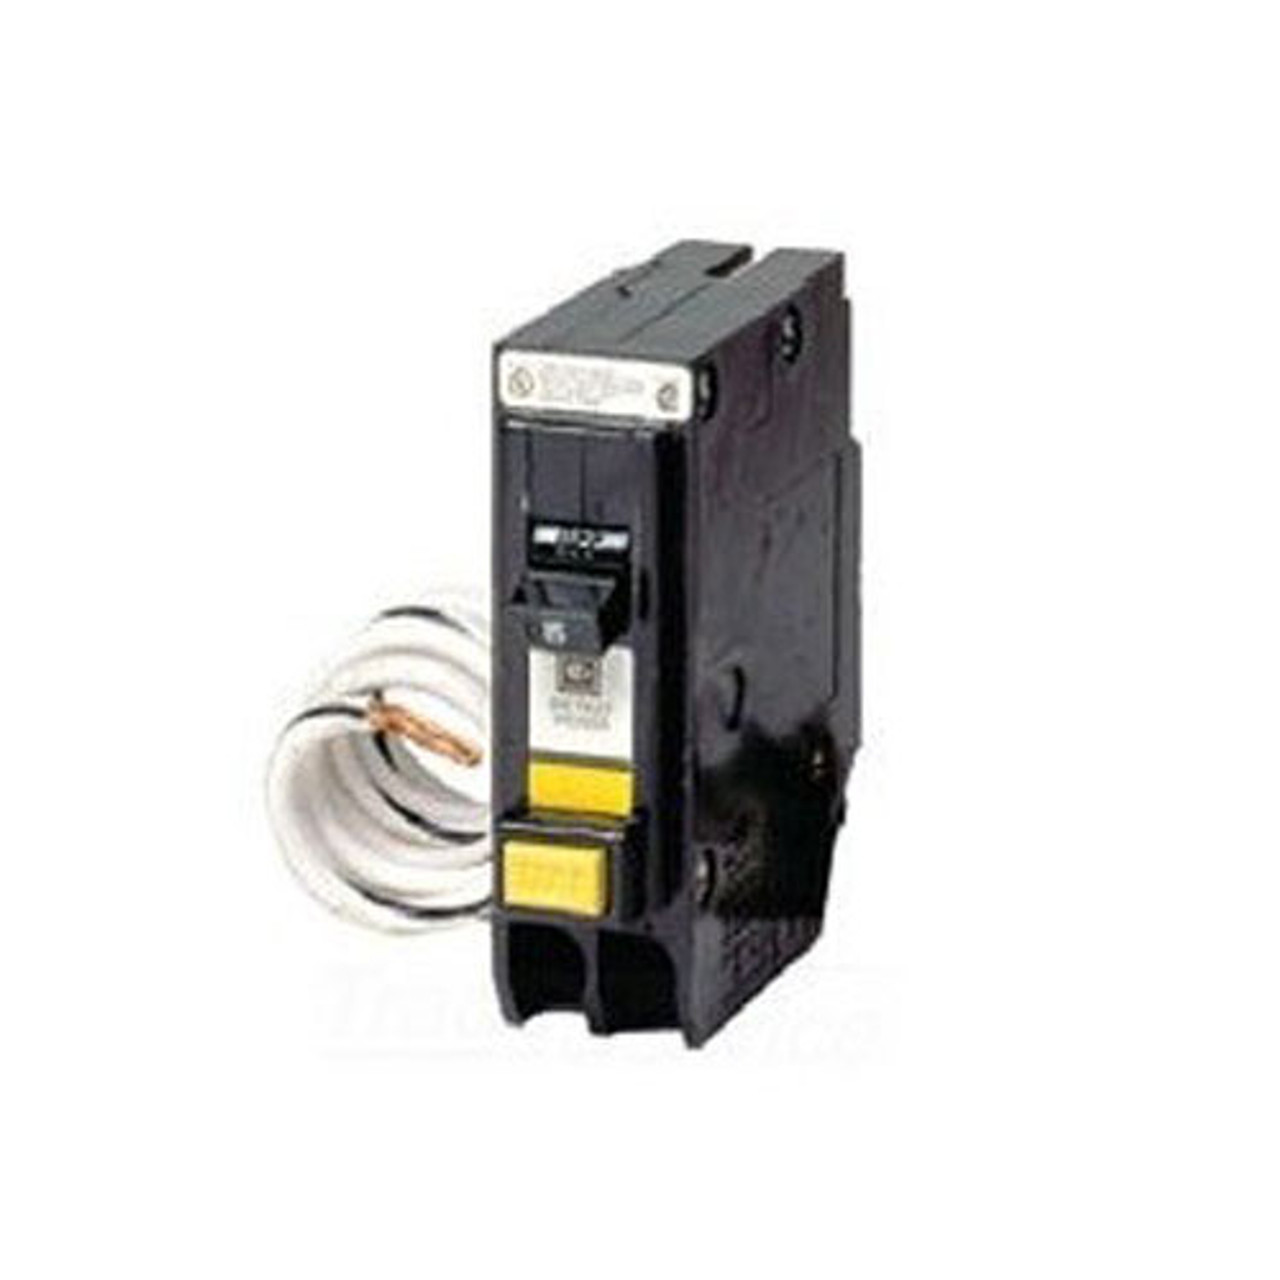 Cutler Hammer BRCAF115 1 Pole 15 Amp 120/240V Compact Arc Fault Circuit Breaker - Used